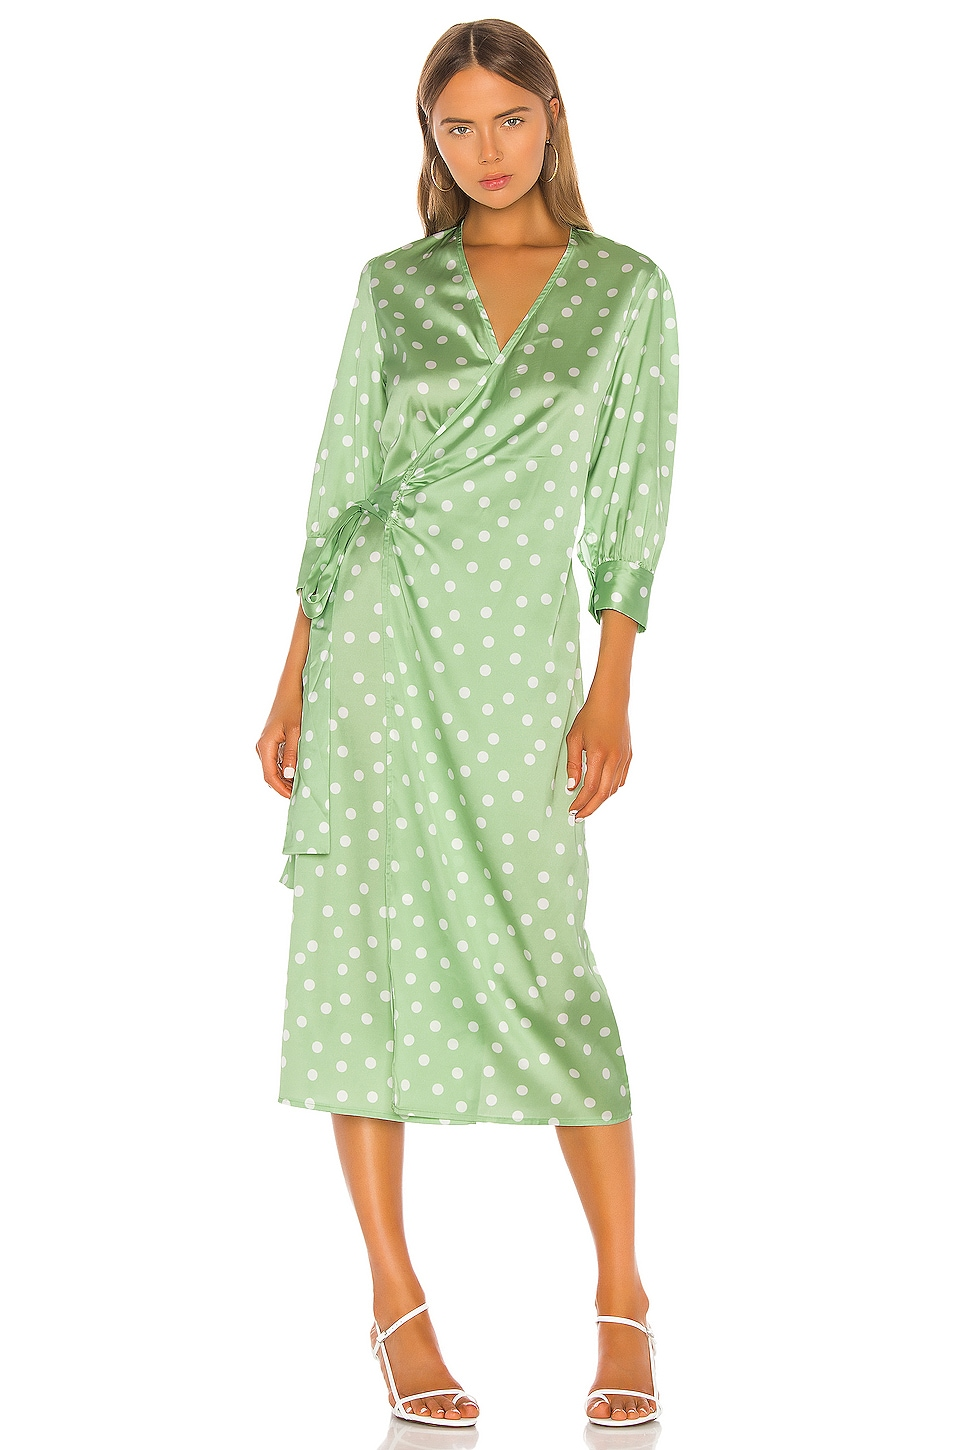 Aeryne Cowry Dot Dress in Mint Dot